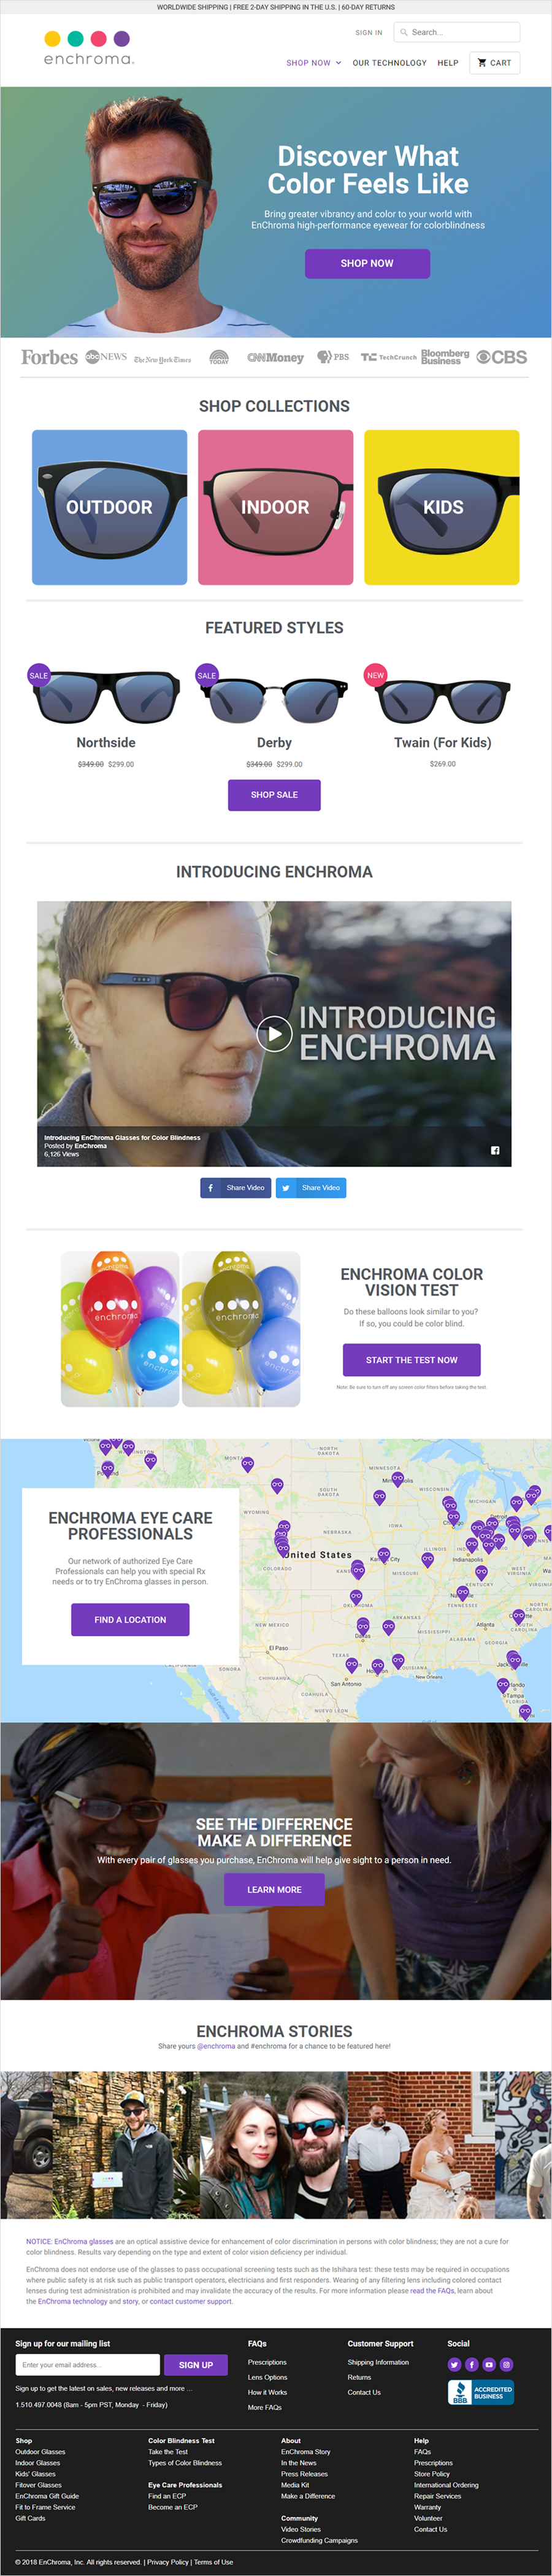 EnChroma Home Page